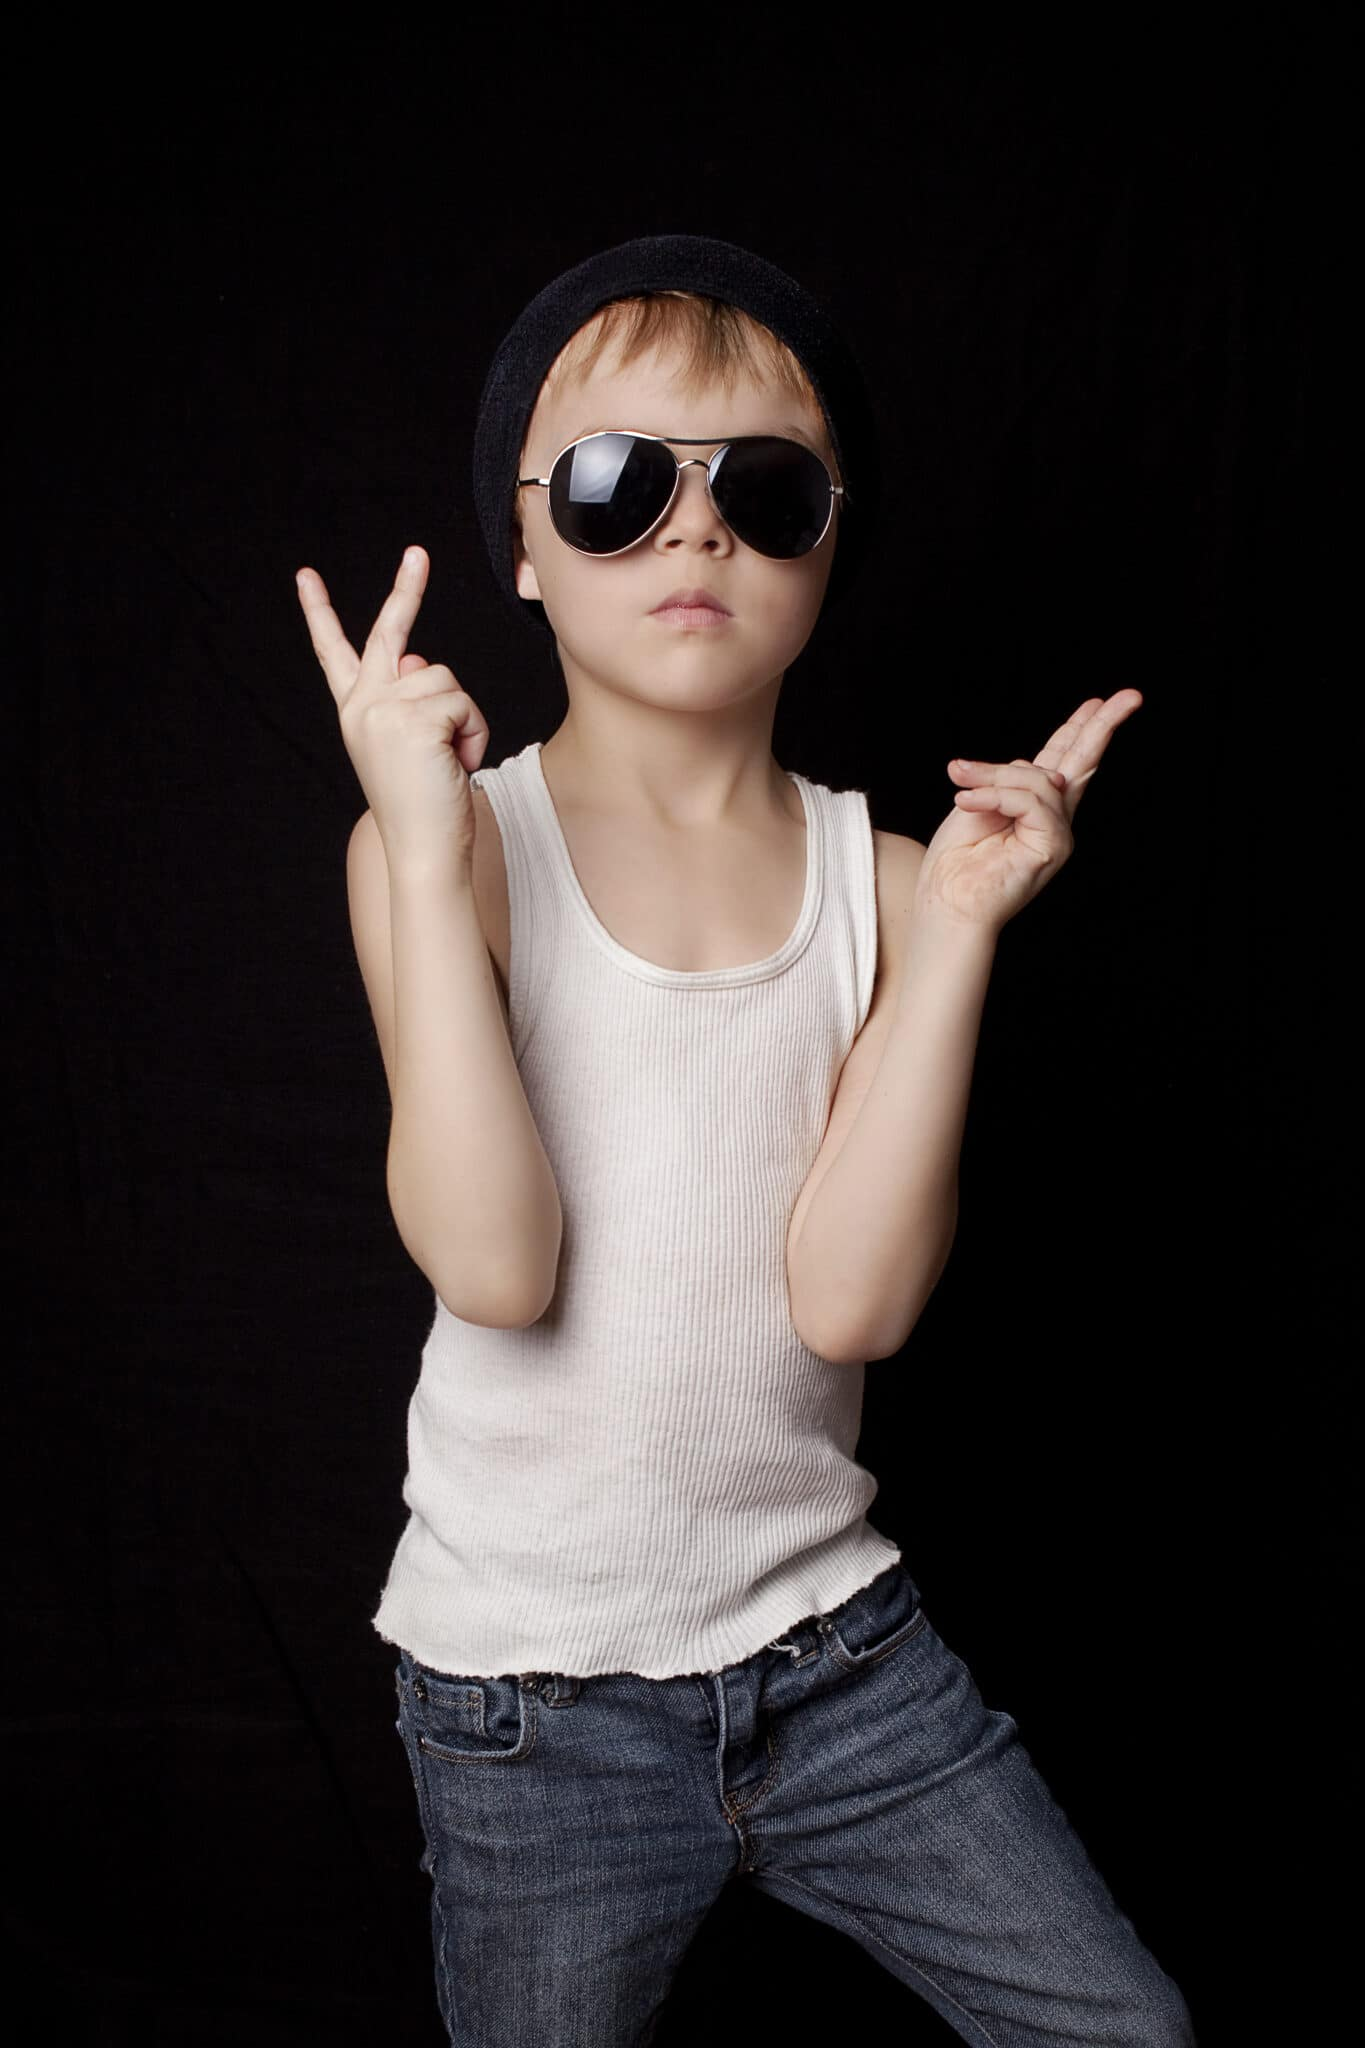 Boy with sunglasses